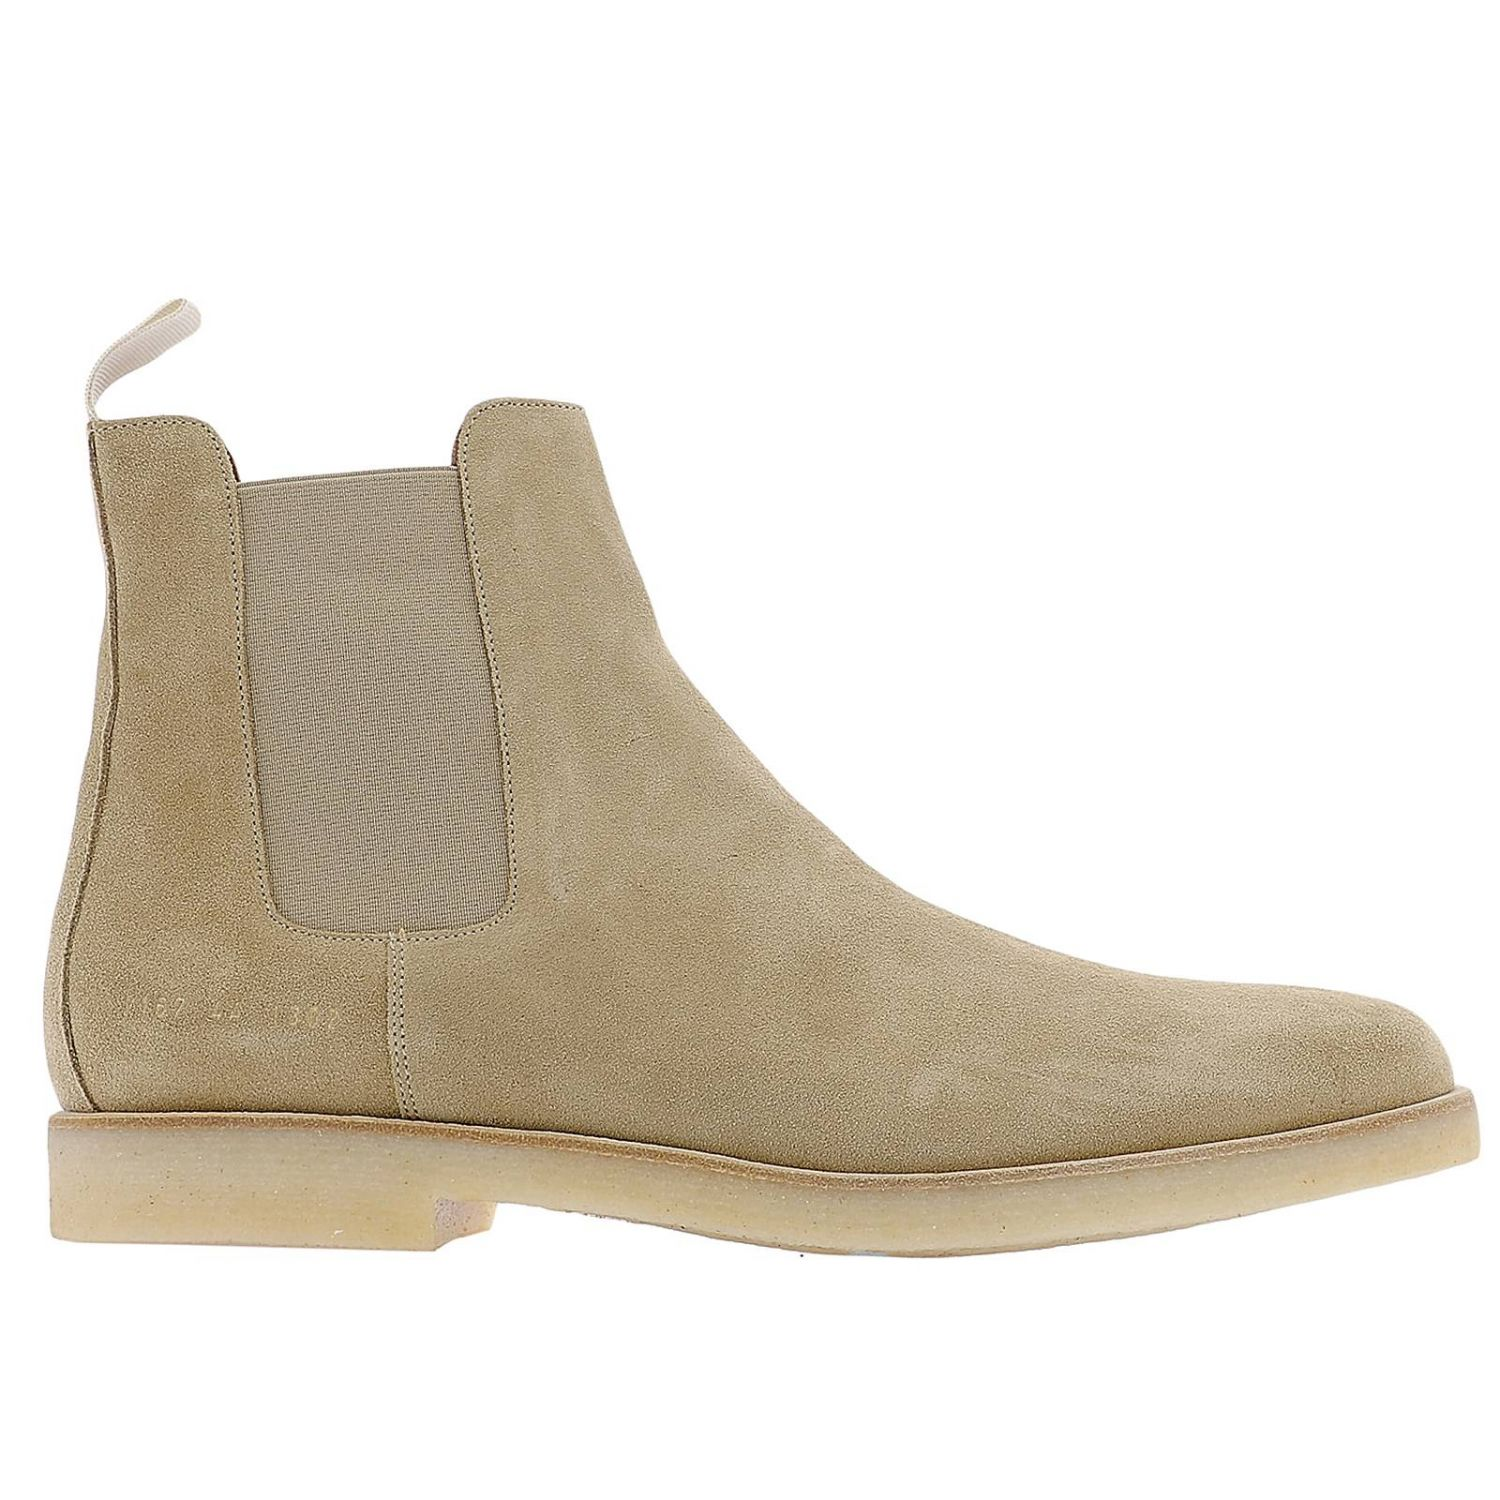 Zapatos hombre Common Projects beige 1